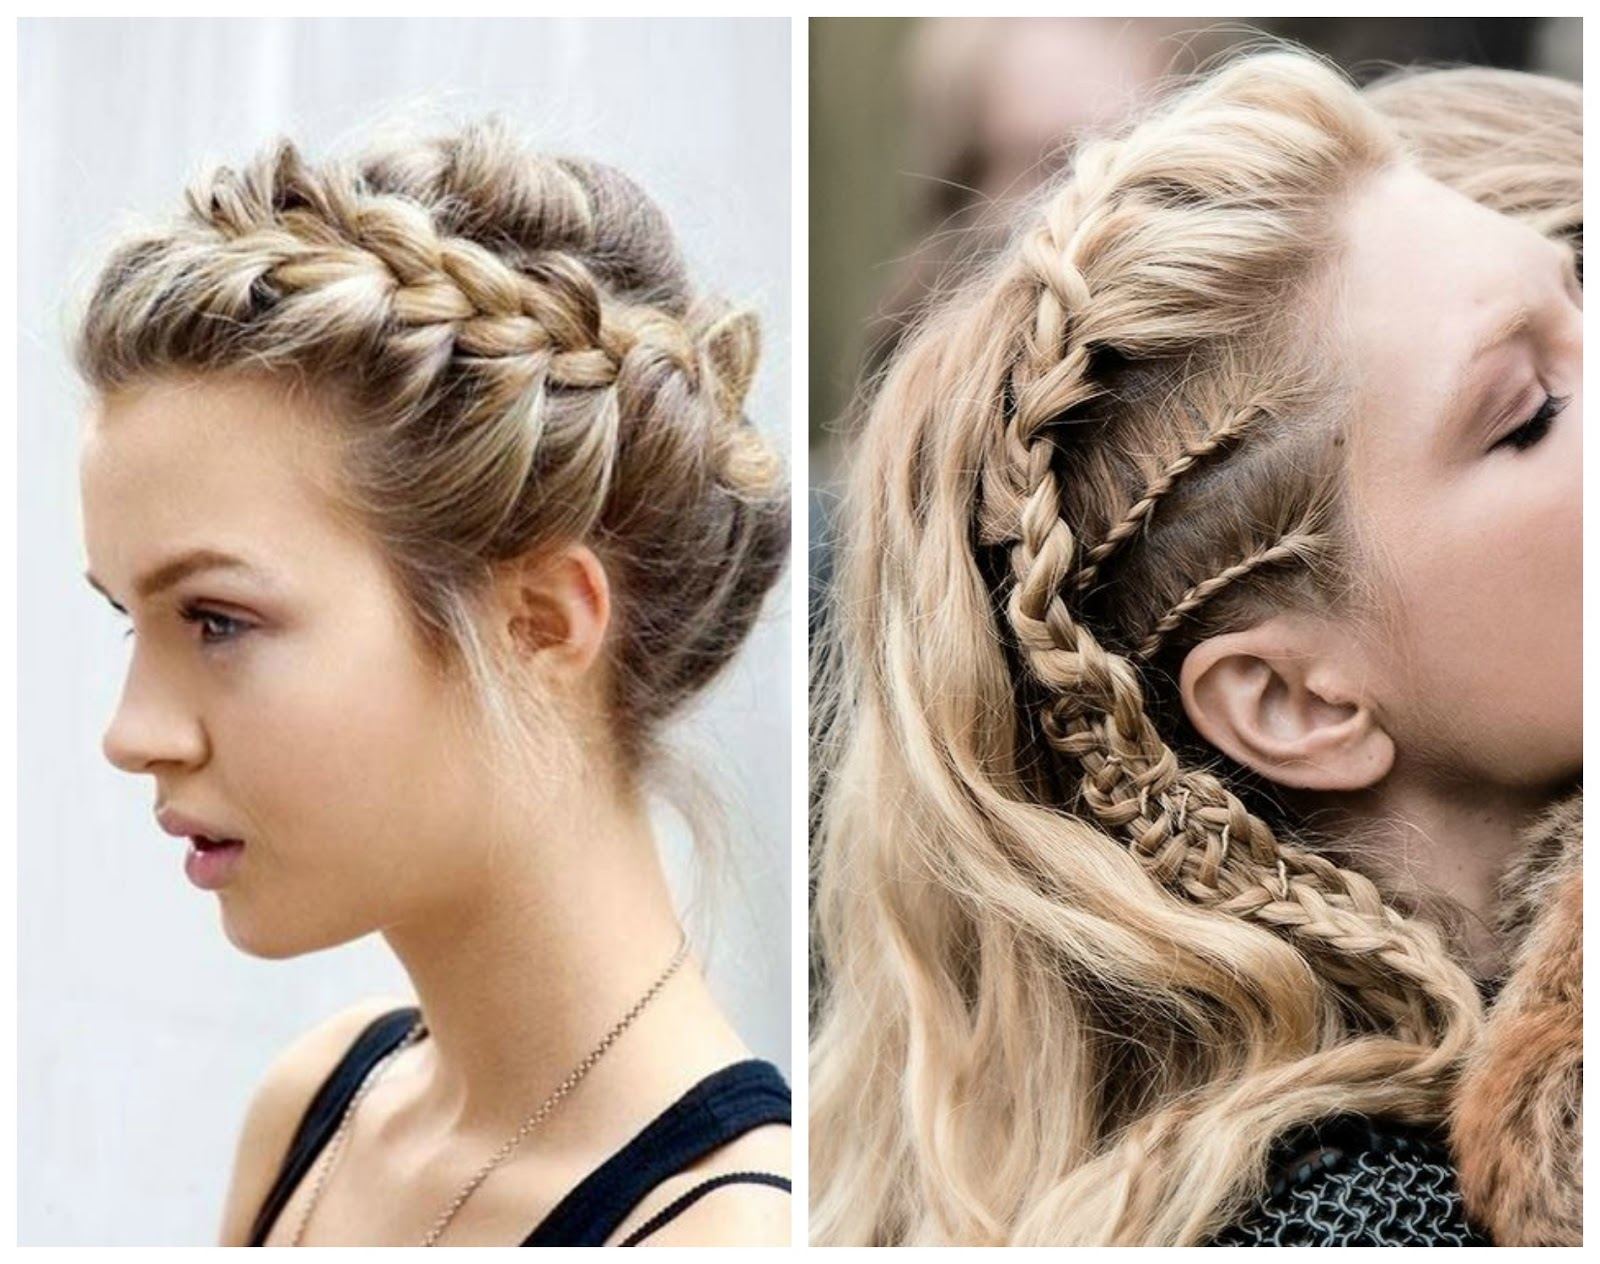 HD wallpapers easy hairstyles for night out